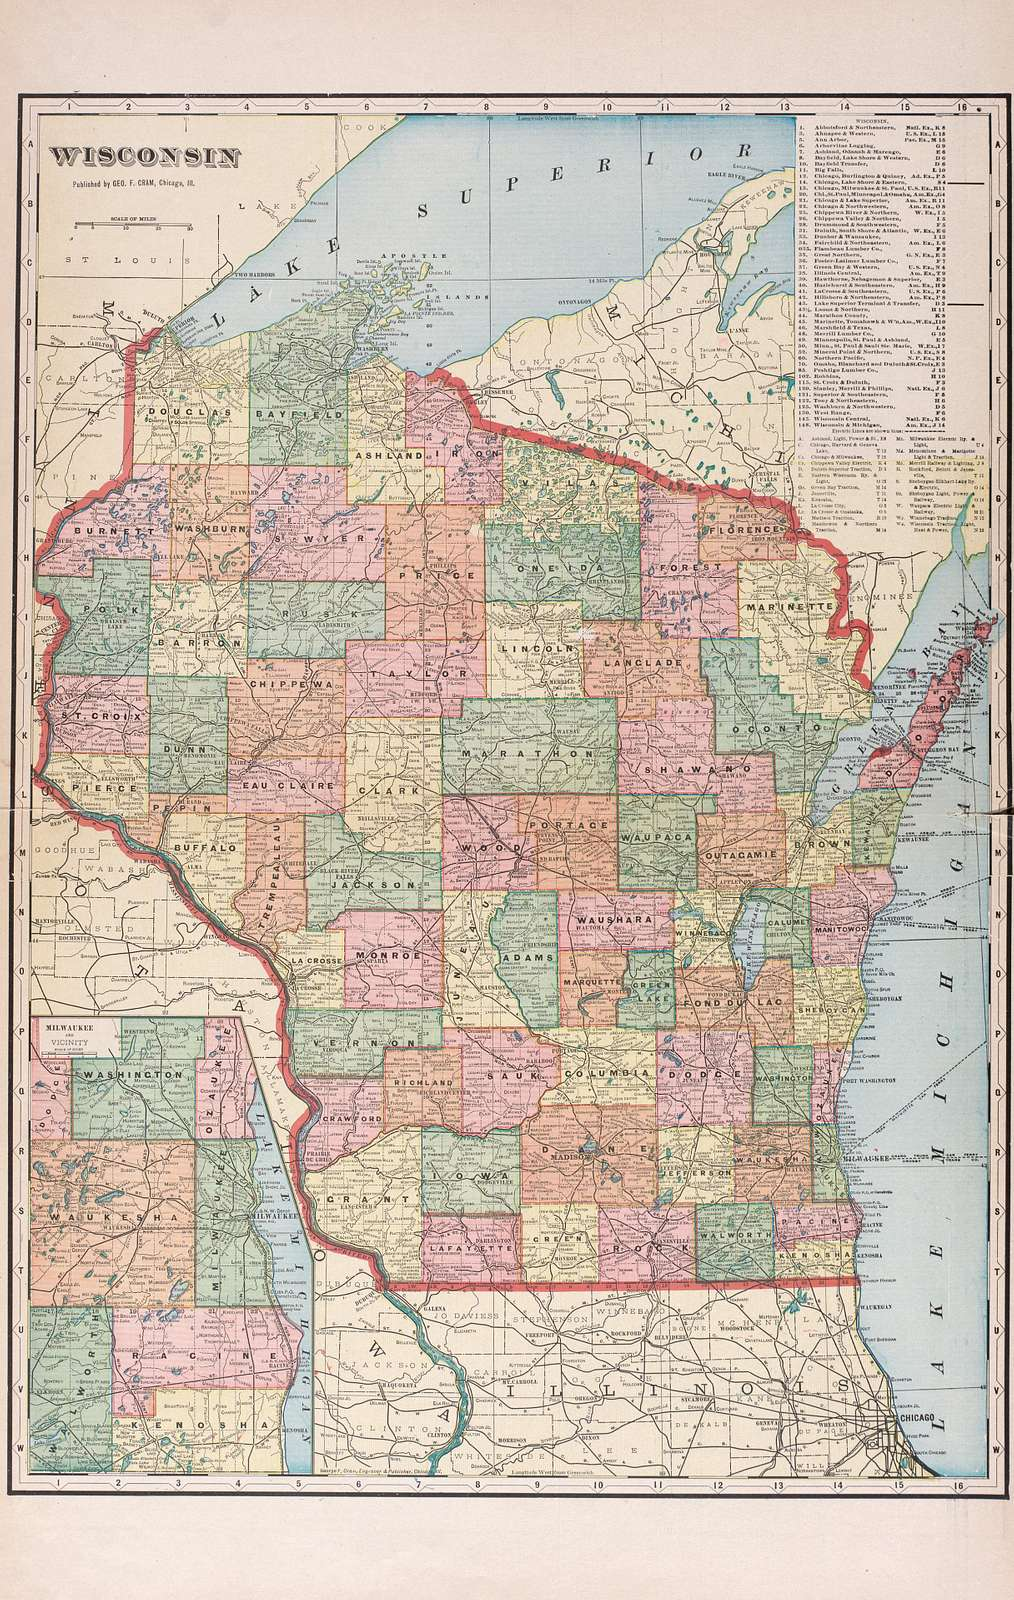 Atlas of Waushara County, Wisconsin : containing maps of villages, cities and townships of the county, maps of state and United States.